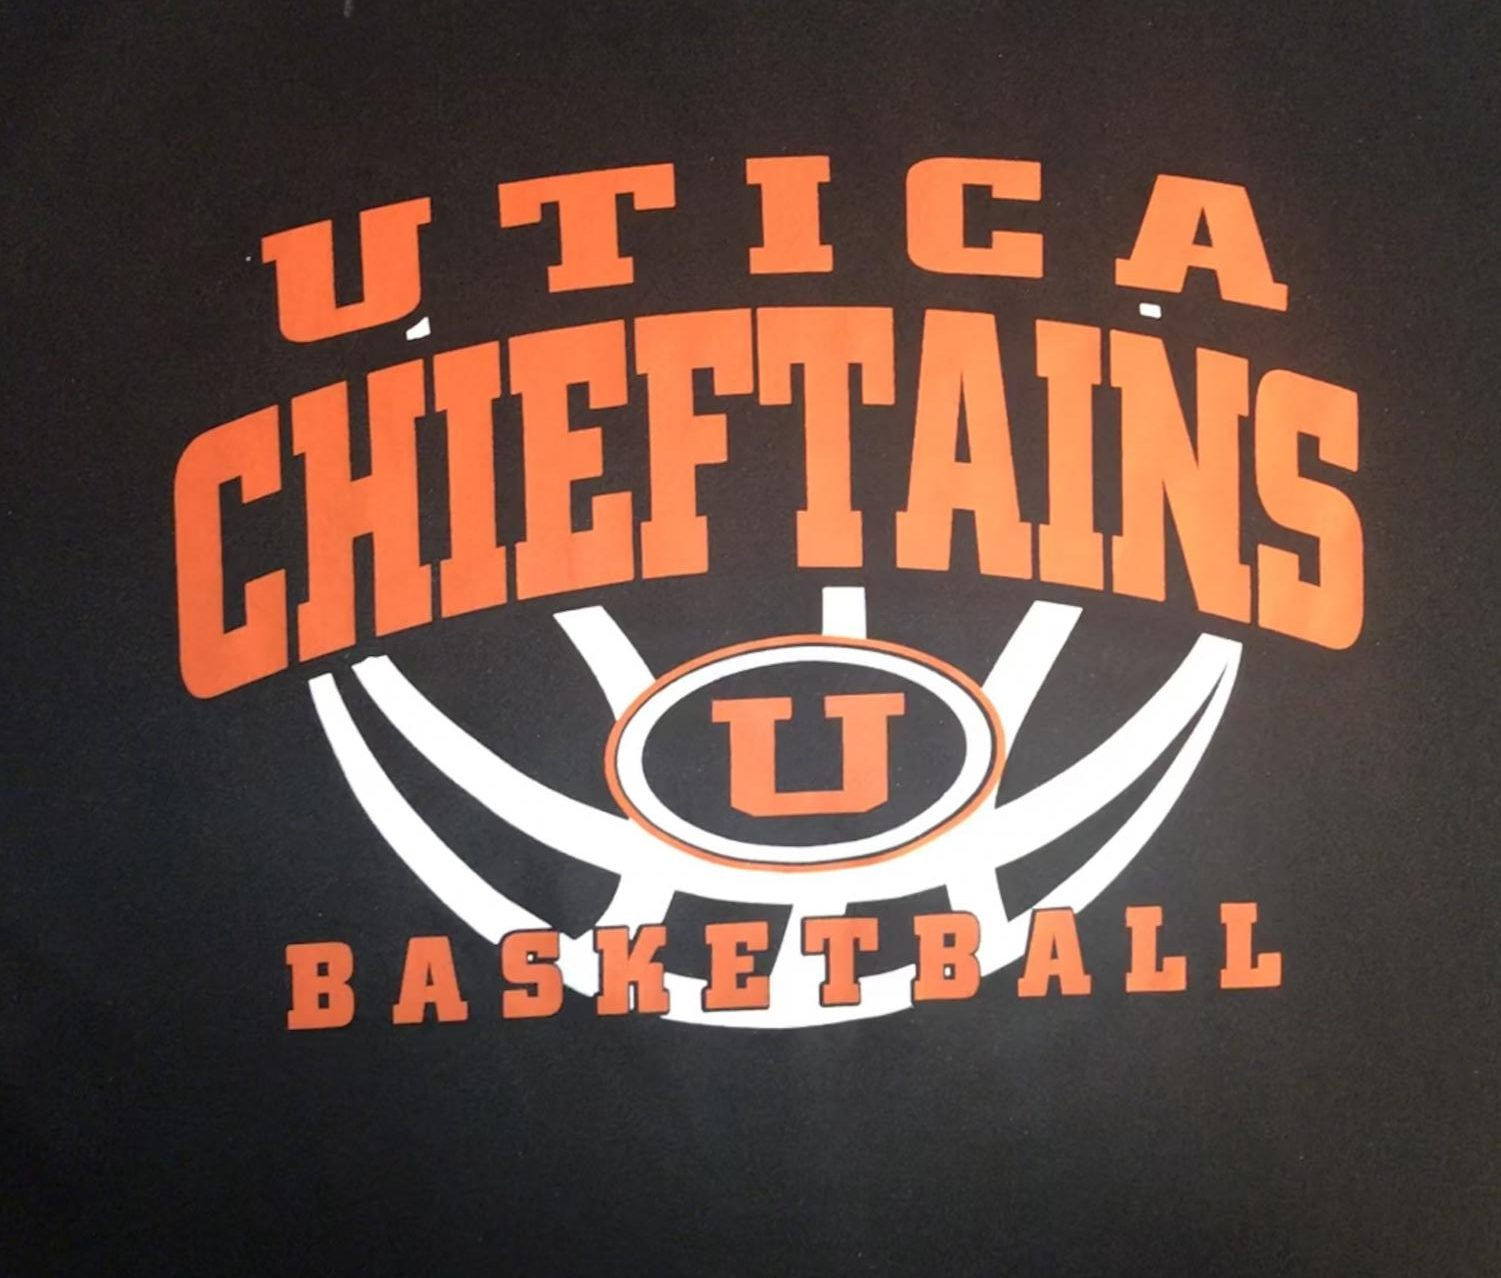 Utica game day gear.